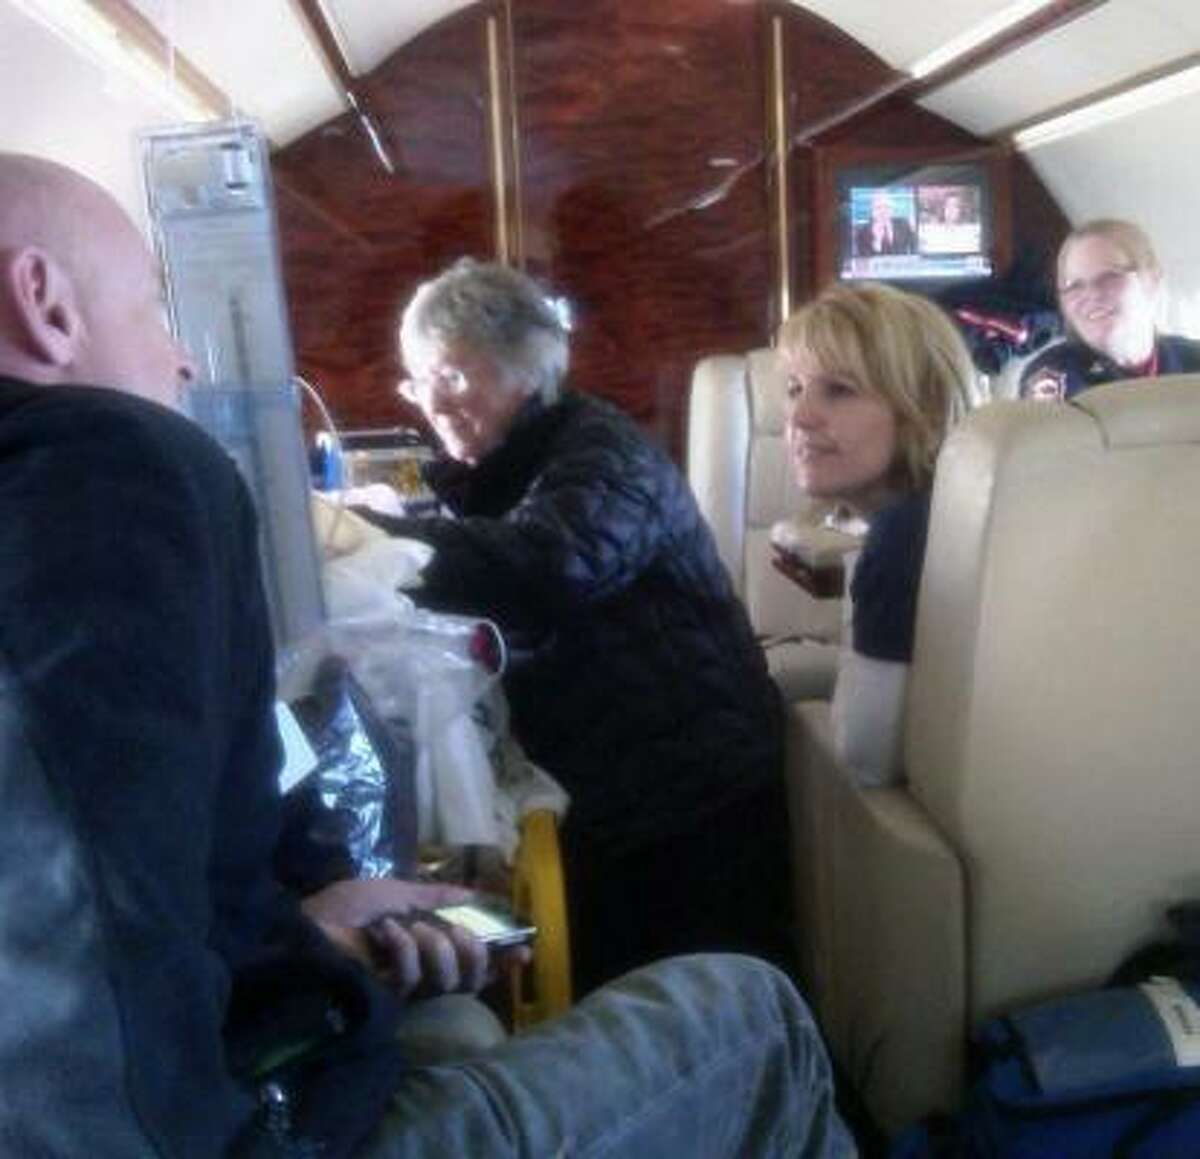 Gloria Giffords, mother of U.S. Rep. Gabrielle Giffords, attends to her Friday on the flight from Tucson to Houston. The congresswoman's husband, astronaut Mark Kelly, left, chats with one of Giffords' nurses, Tracy Culbert.